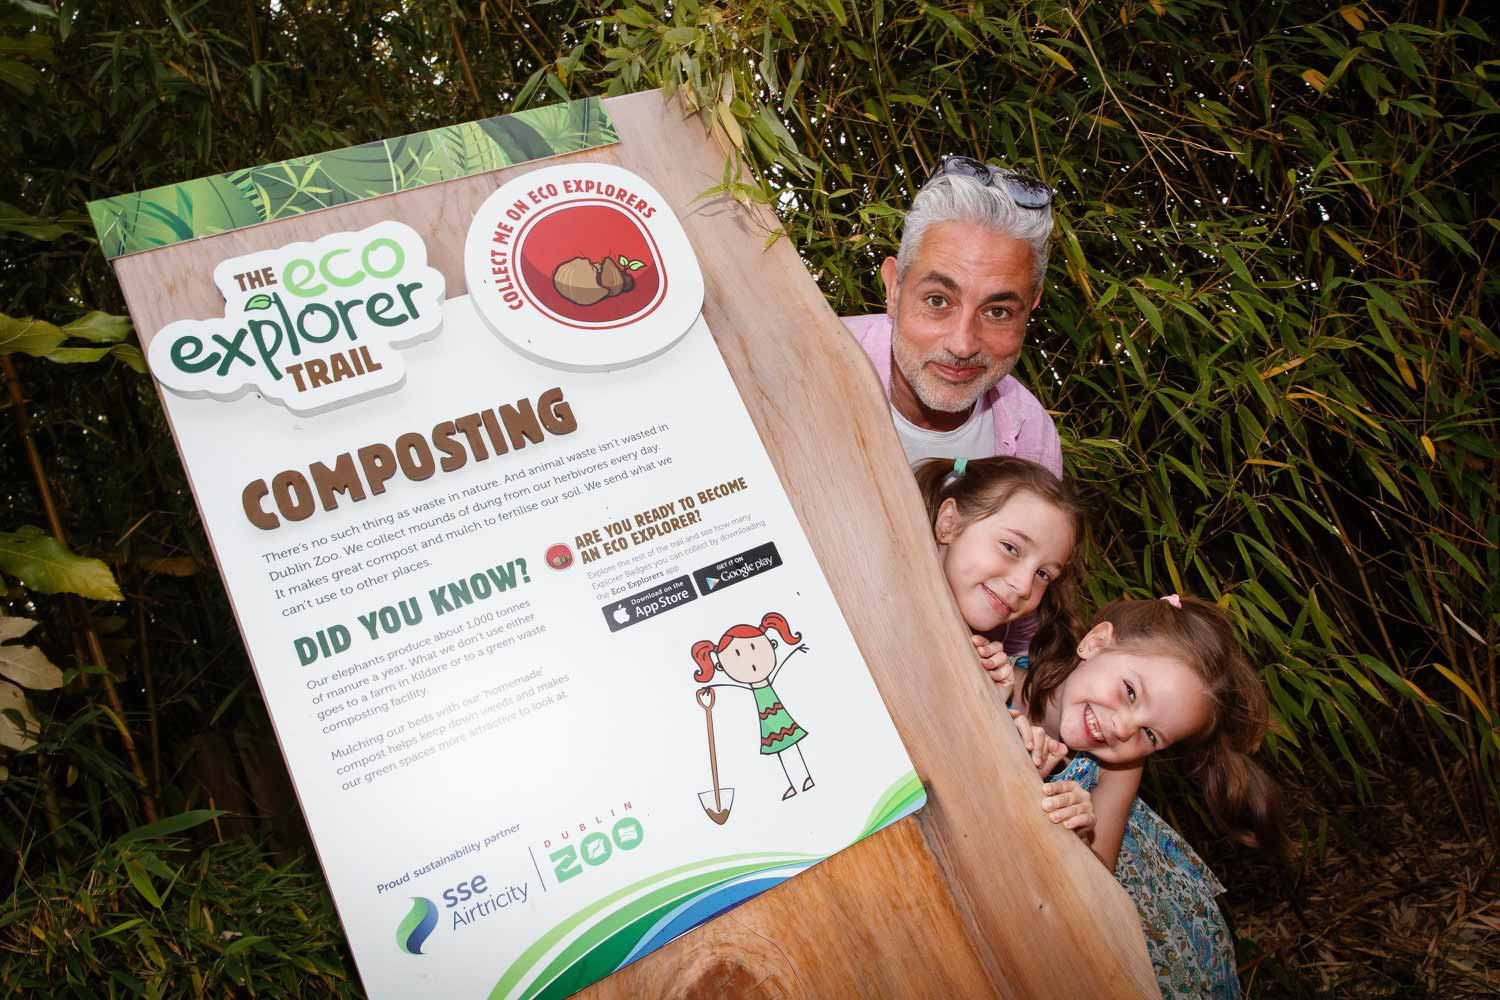 Baz Ashmawy joins us for a 'Summer of Sustainability' at Dublin Zoo